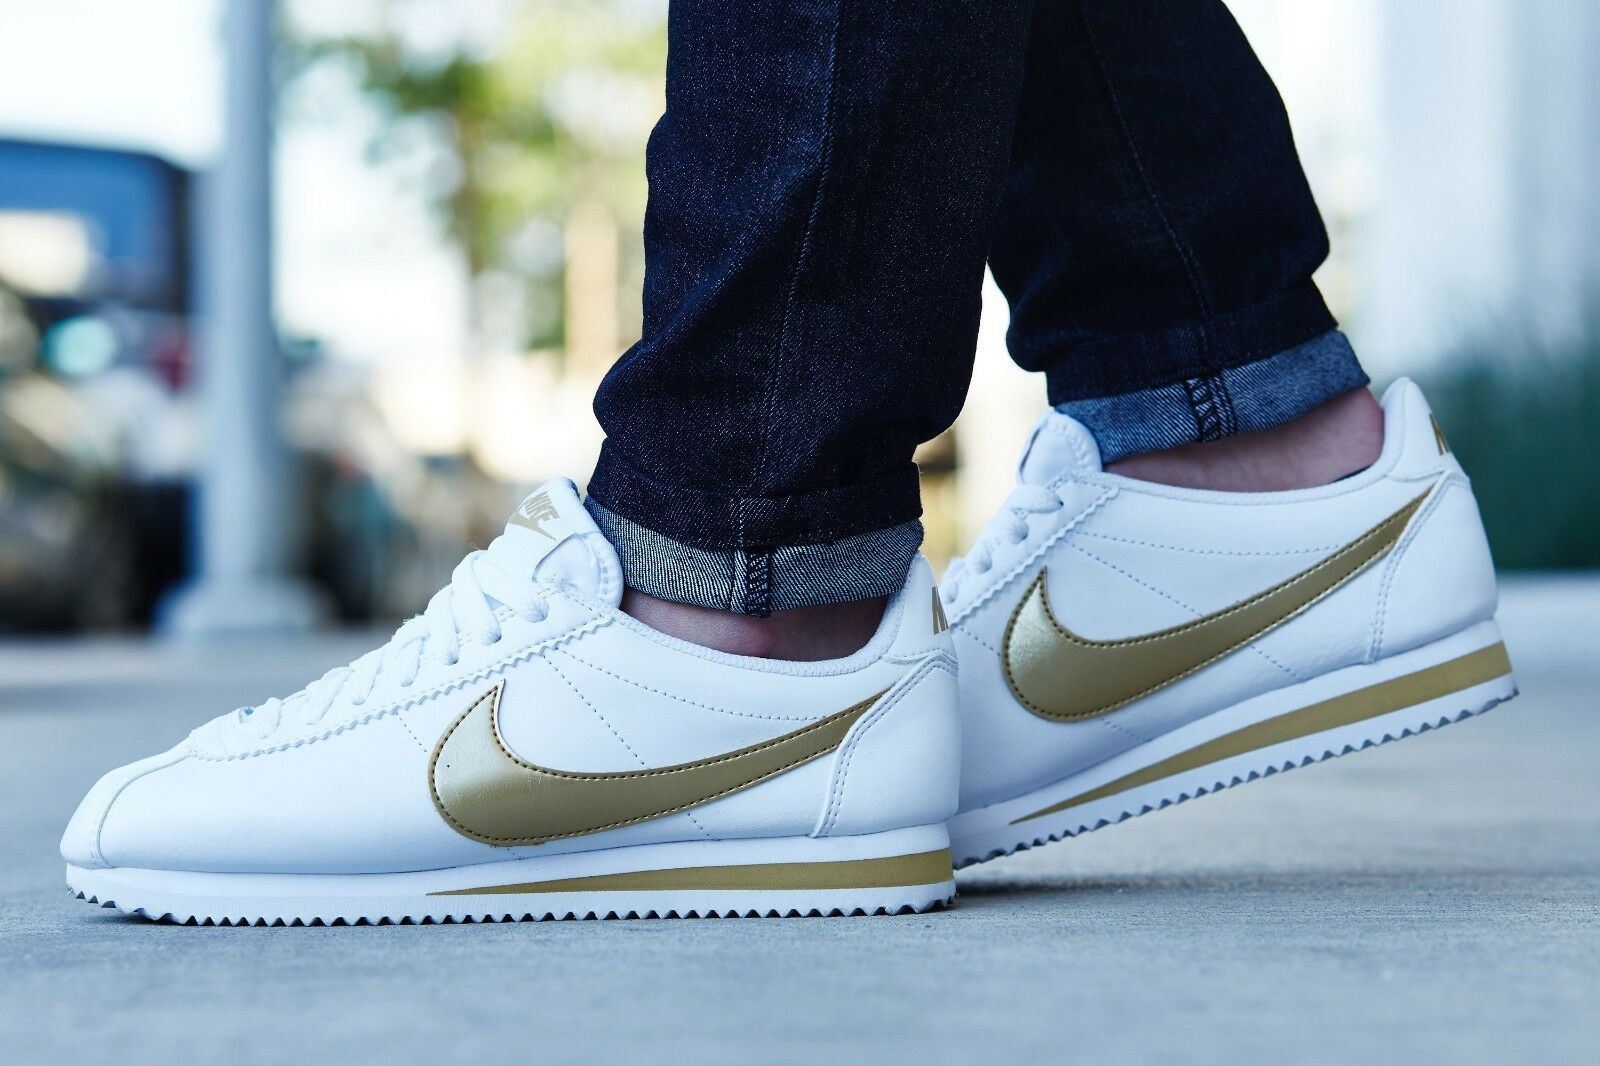 Nike Classic Cortez Leather White Metallic gold 807471-106 Wmn Sz 7